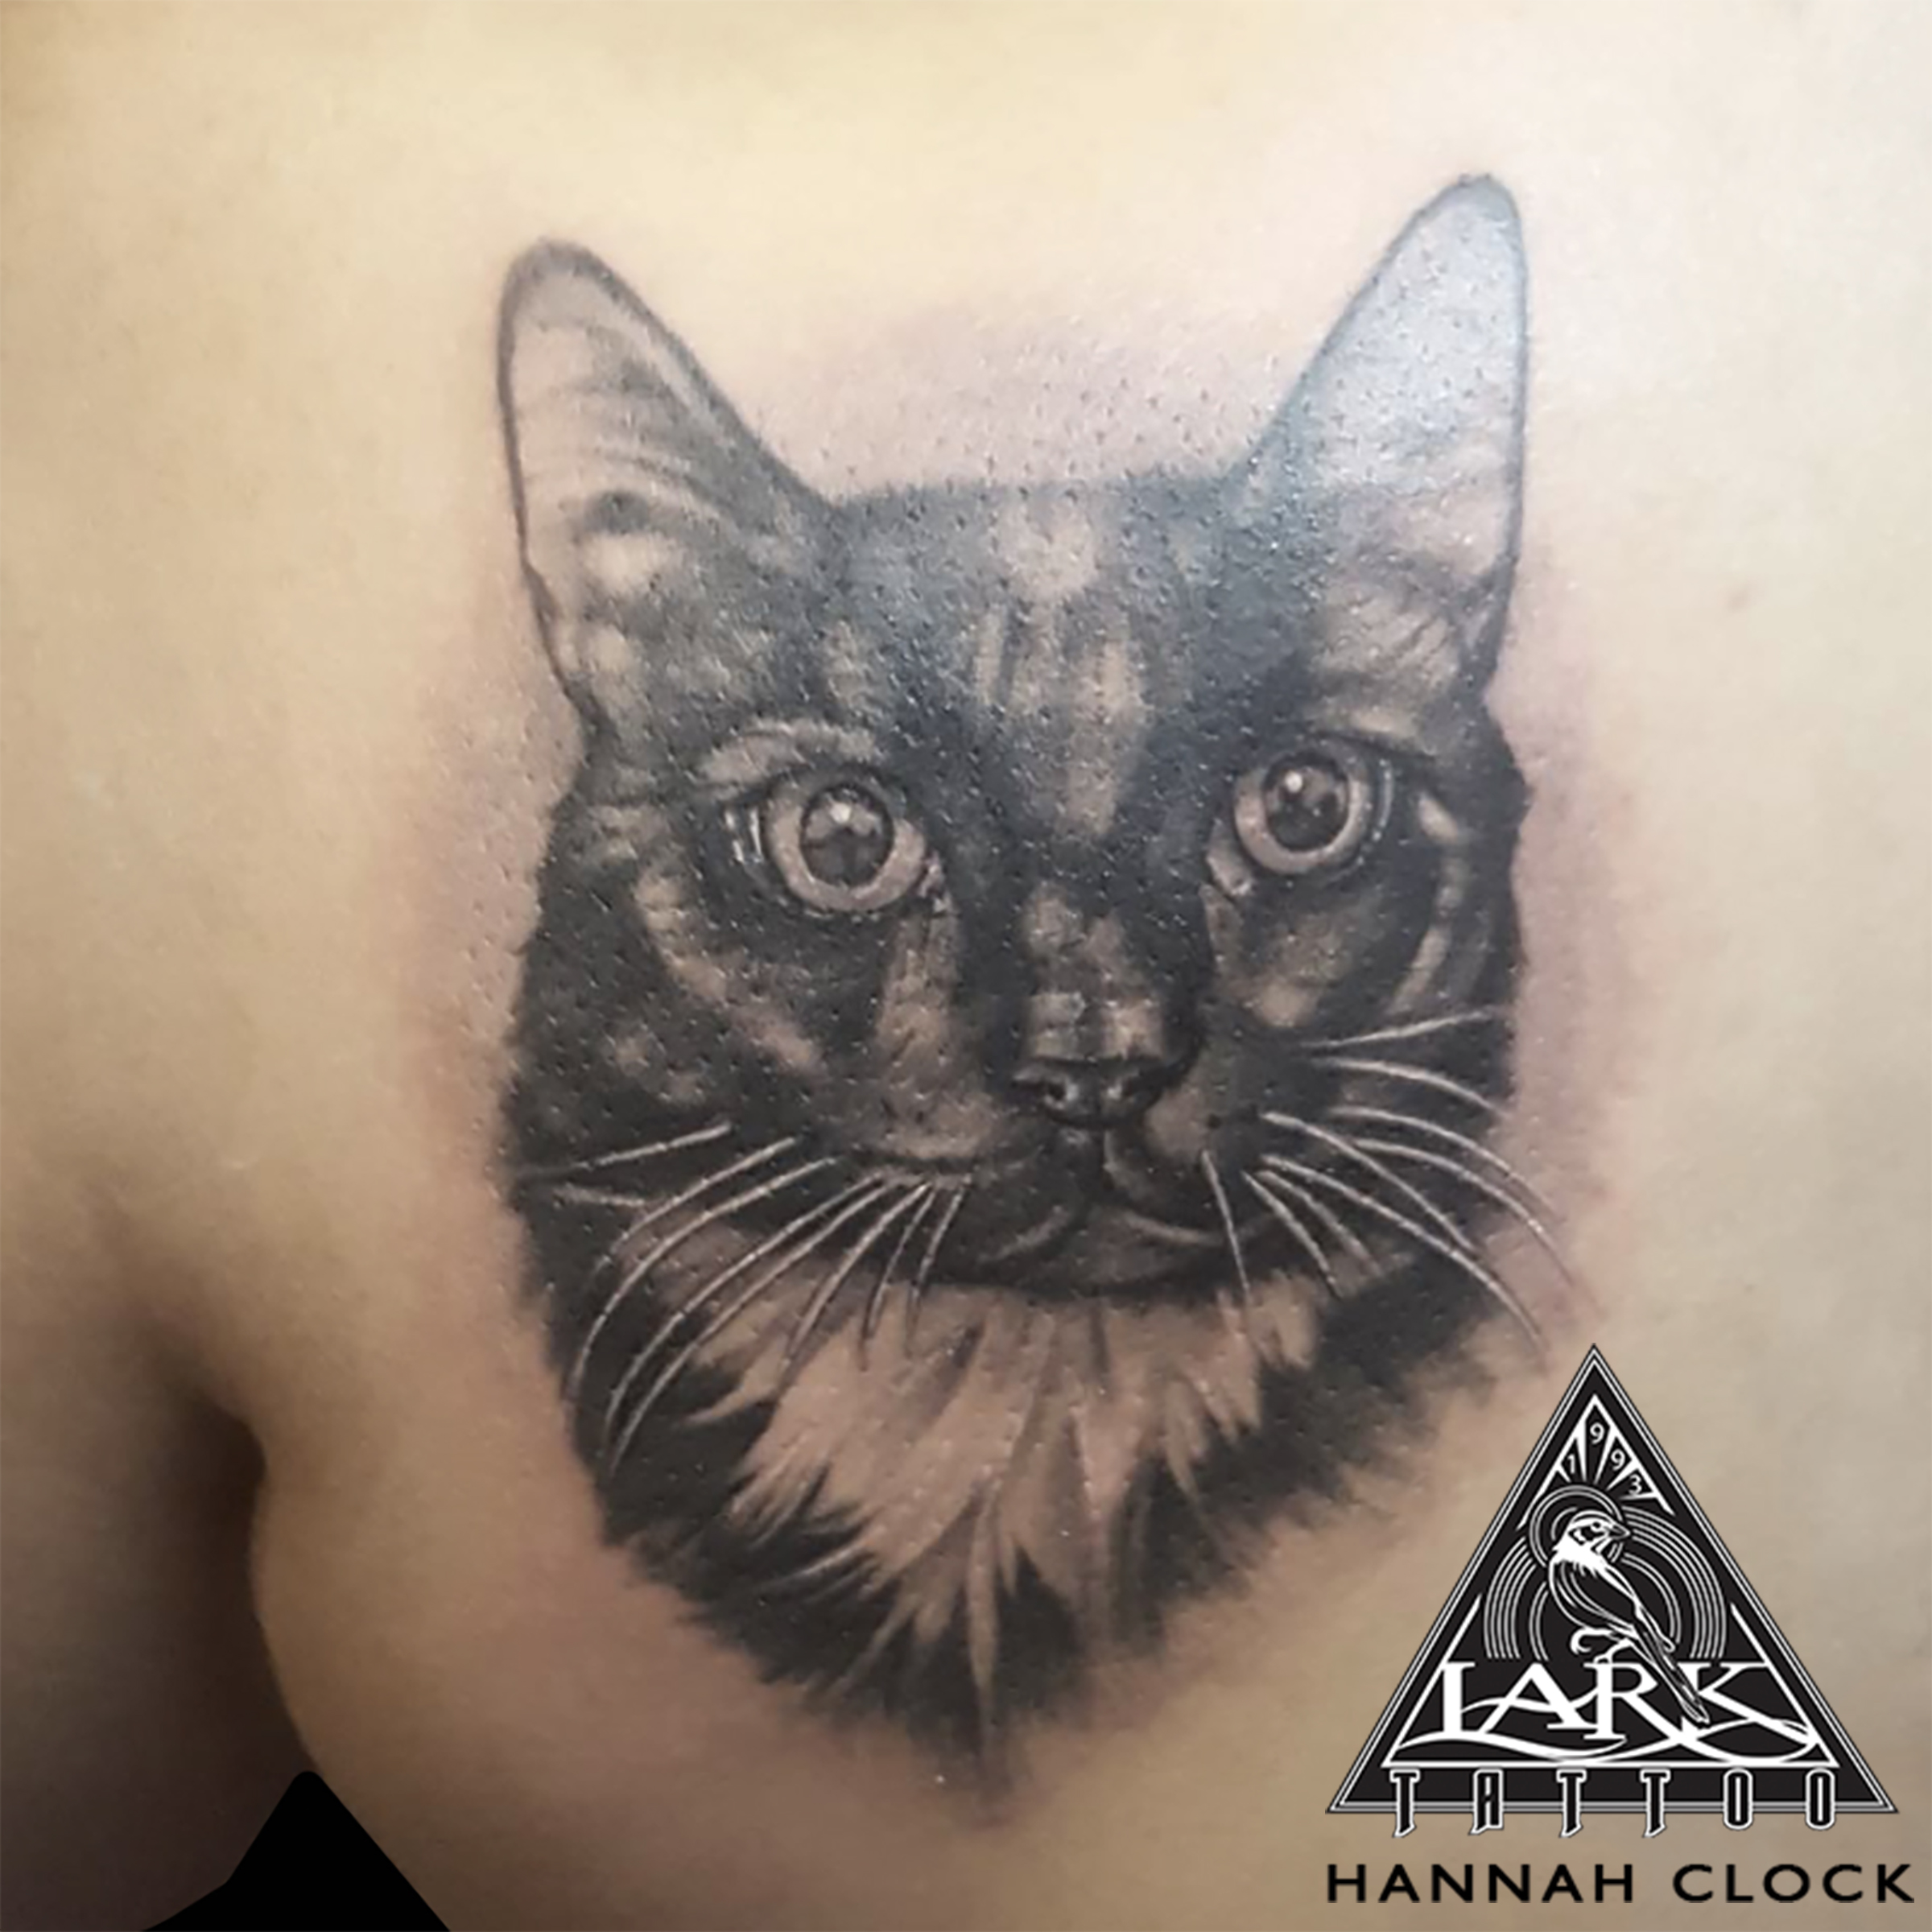 #cat #CatTattoo #Cattoo #blackandgreytattoo #blackandgraytattoo #pettattoo #animaltattoo #tattoo #tattoos #tat #tats #tatts #tatted #tattedup #tattoist #tattooed #inked #inkedup #ink #tattoooftheday #amazingink #bodyart #tattooig #tattoosofinstagram #instatats #larktattoo #larktattoos #larktattoowestbury #westbury #longisland #NY #NewYork #usa #art